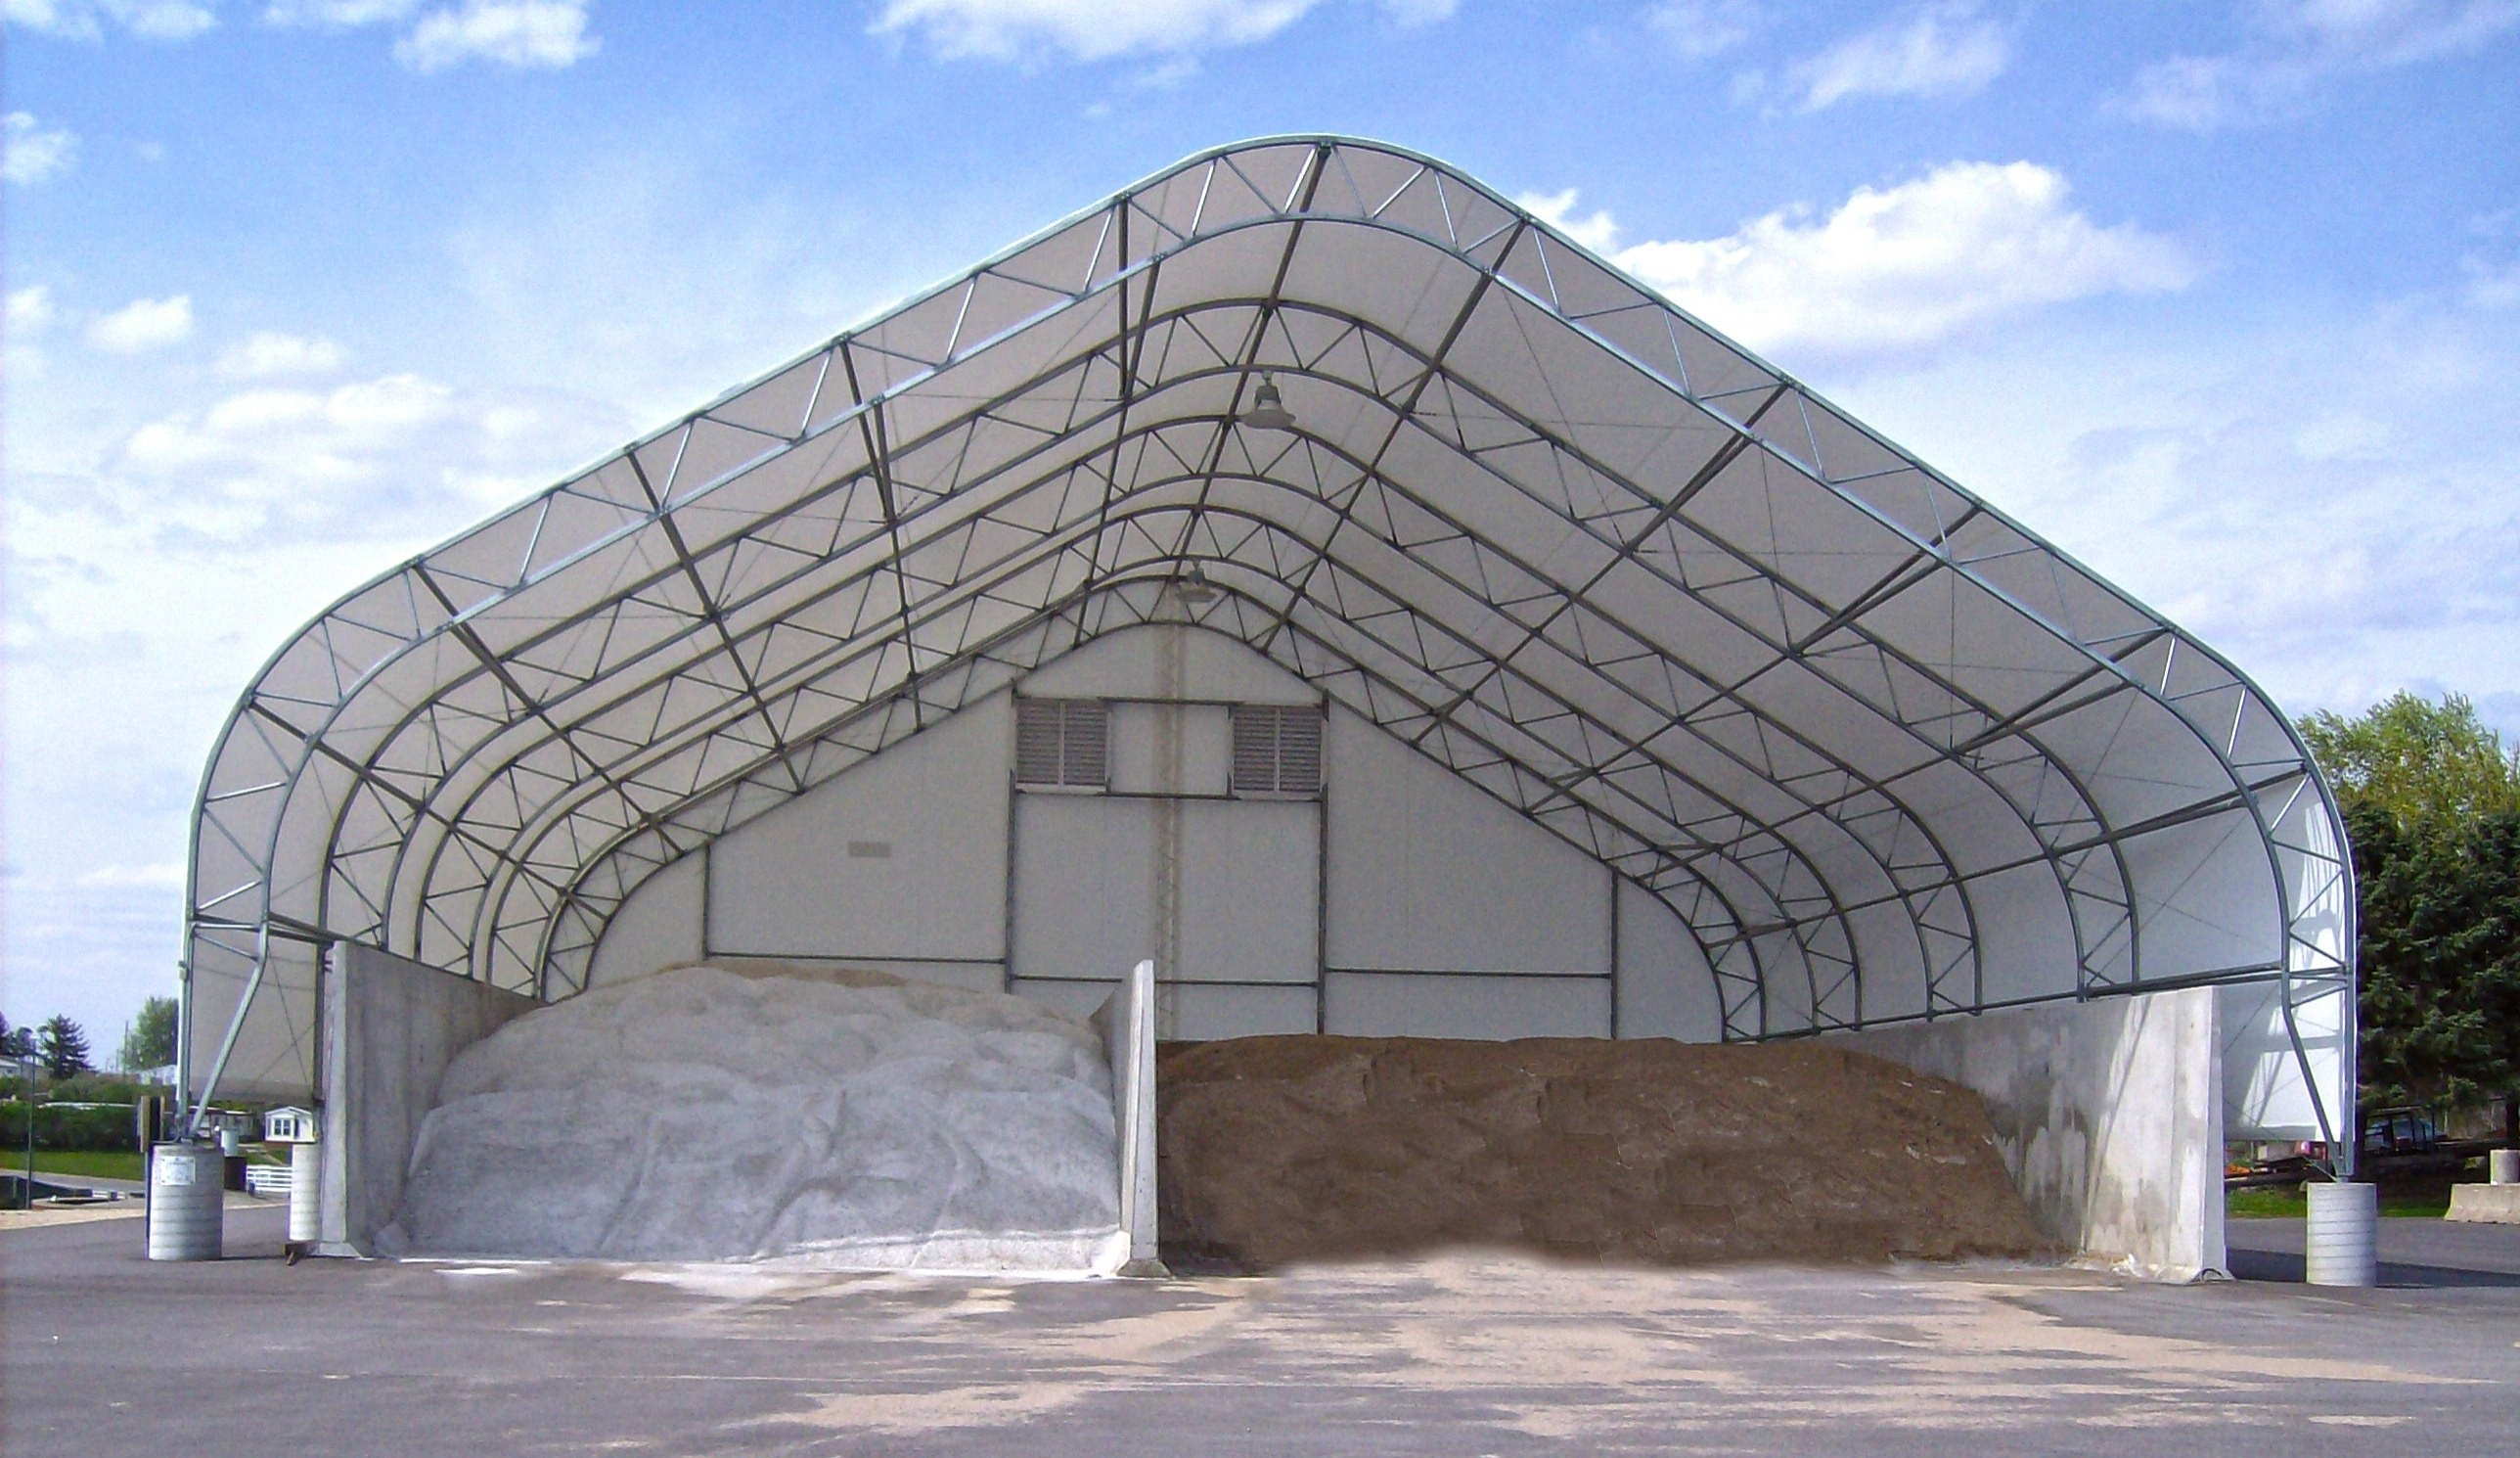 Salt Storage Building on Piers